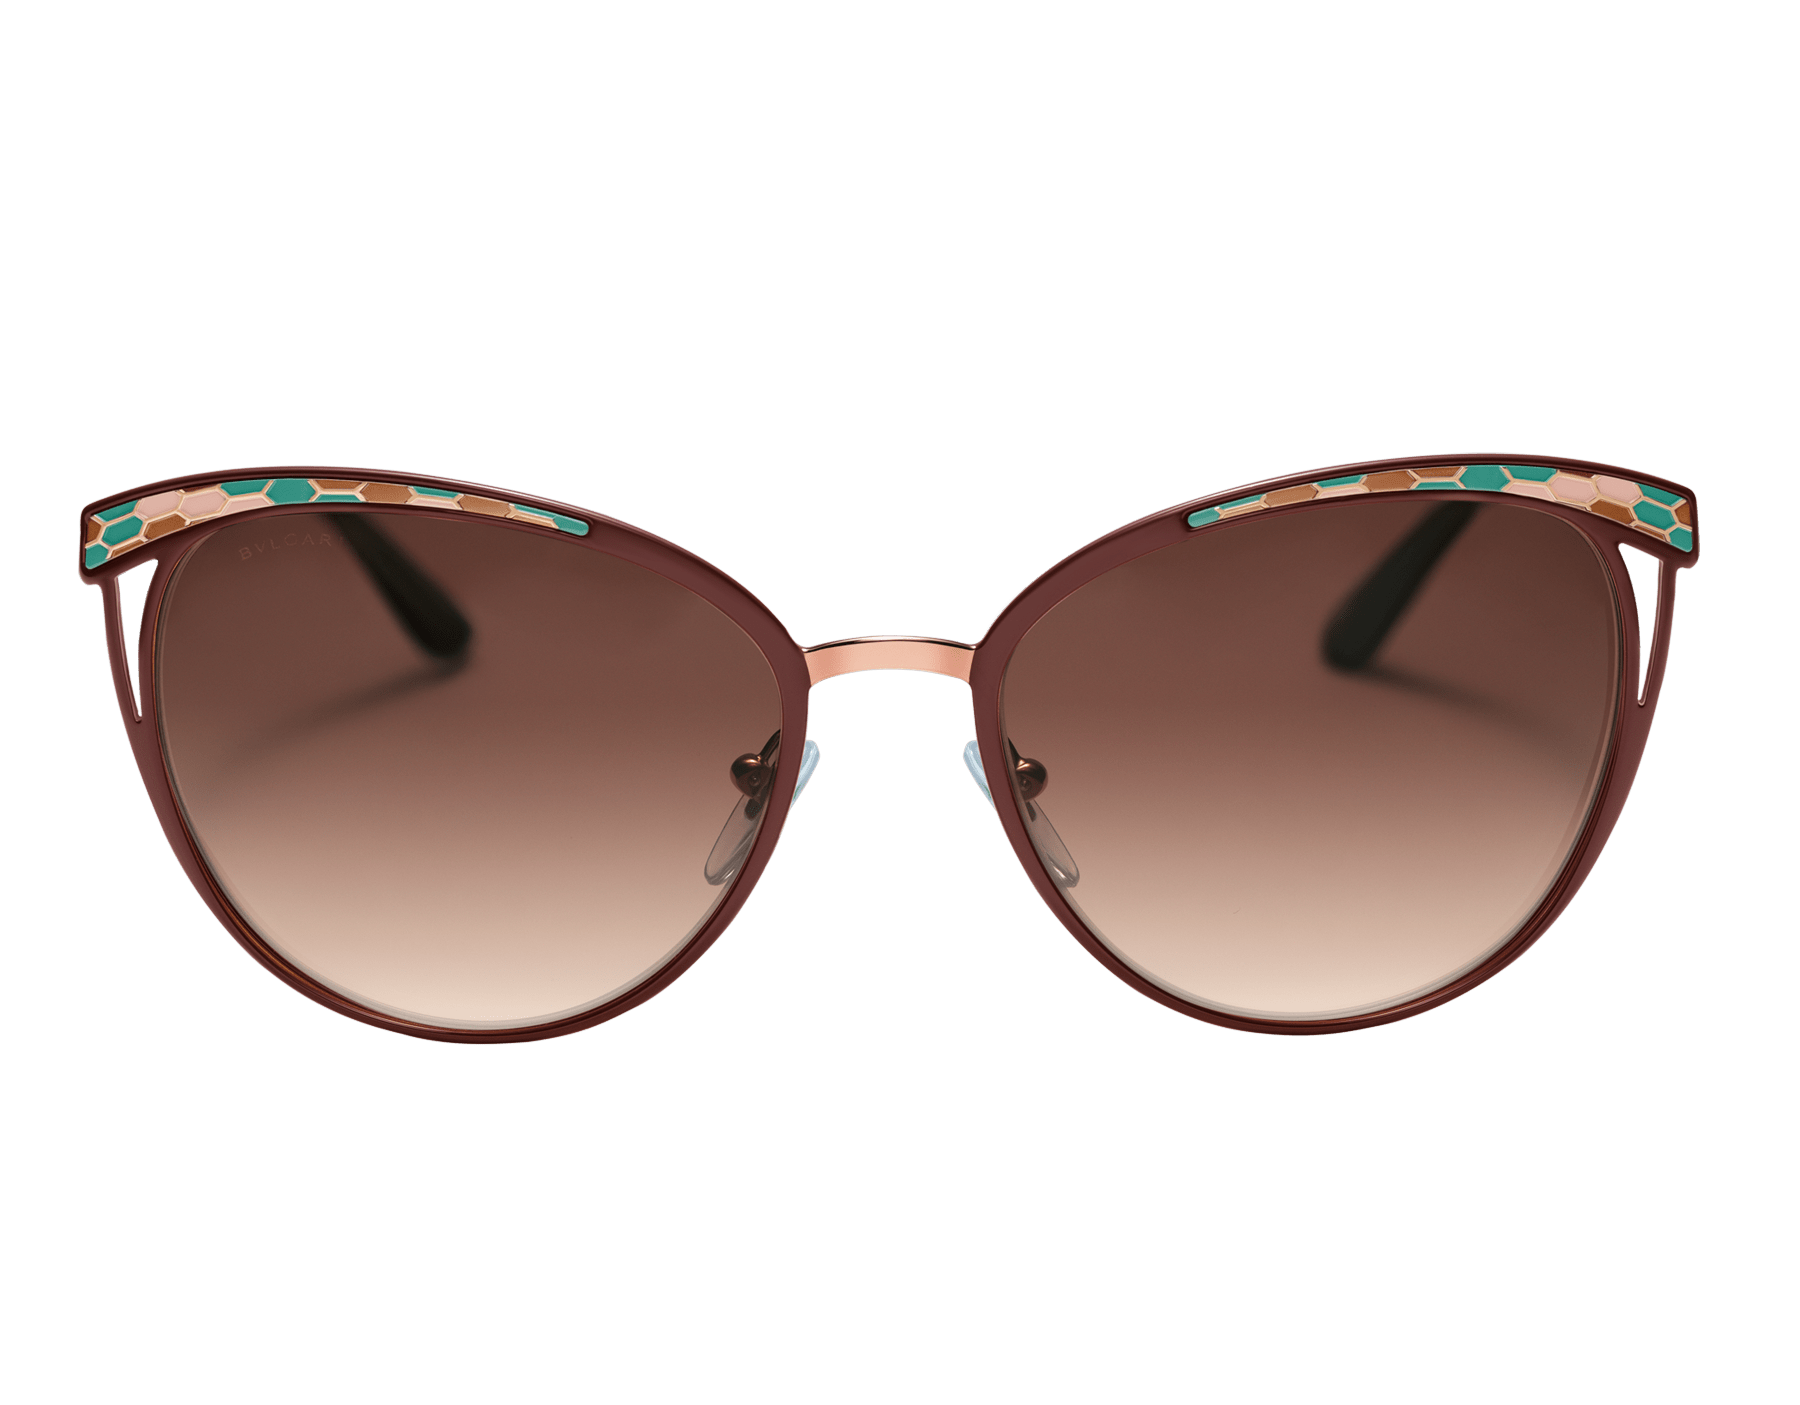 Bulgari Serpenti Serpentine cat-eye metal sunglasses. 903977 image 2